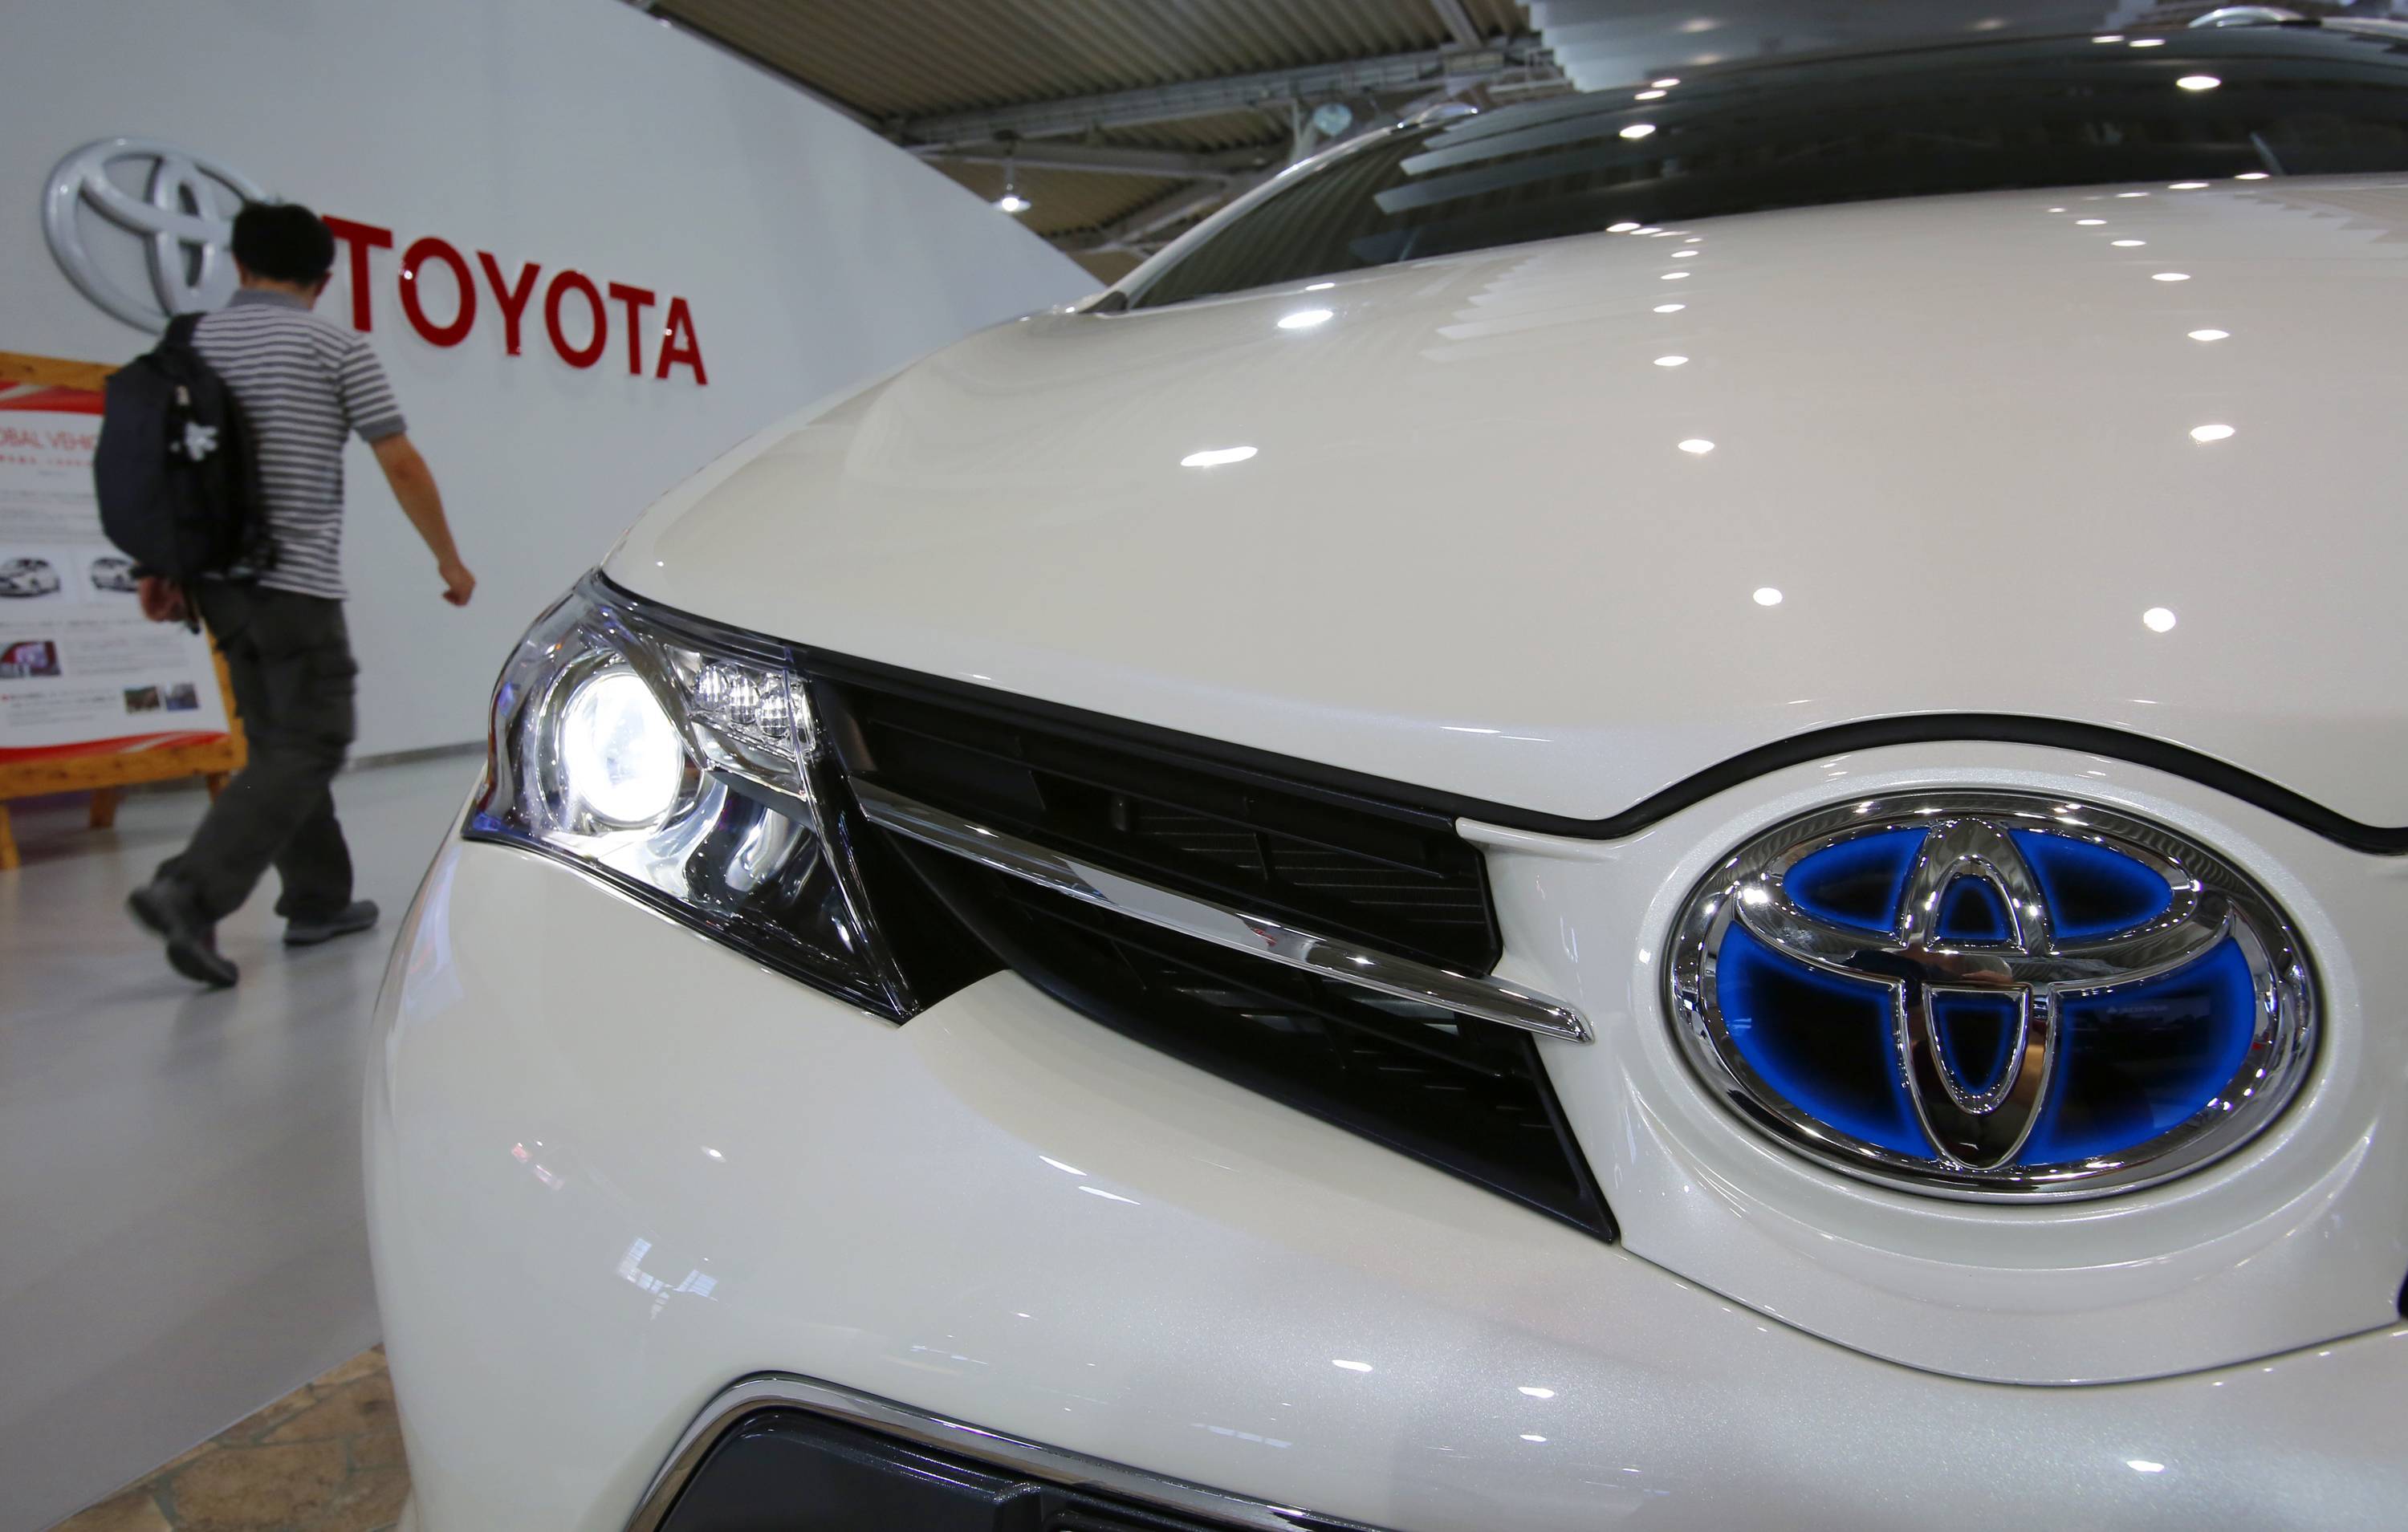 Toyota Motor Corp. reported a 5 percent jump in quarterly profit Tuesday, outpacing expectations as vehicle sales grew in North America and Europe, offsetting a drop in Japan.